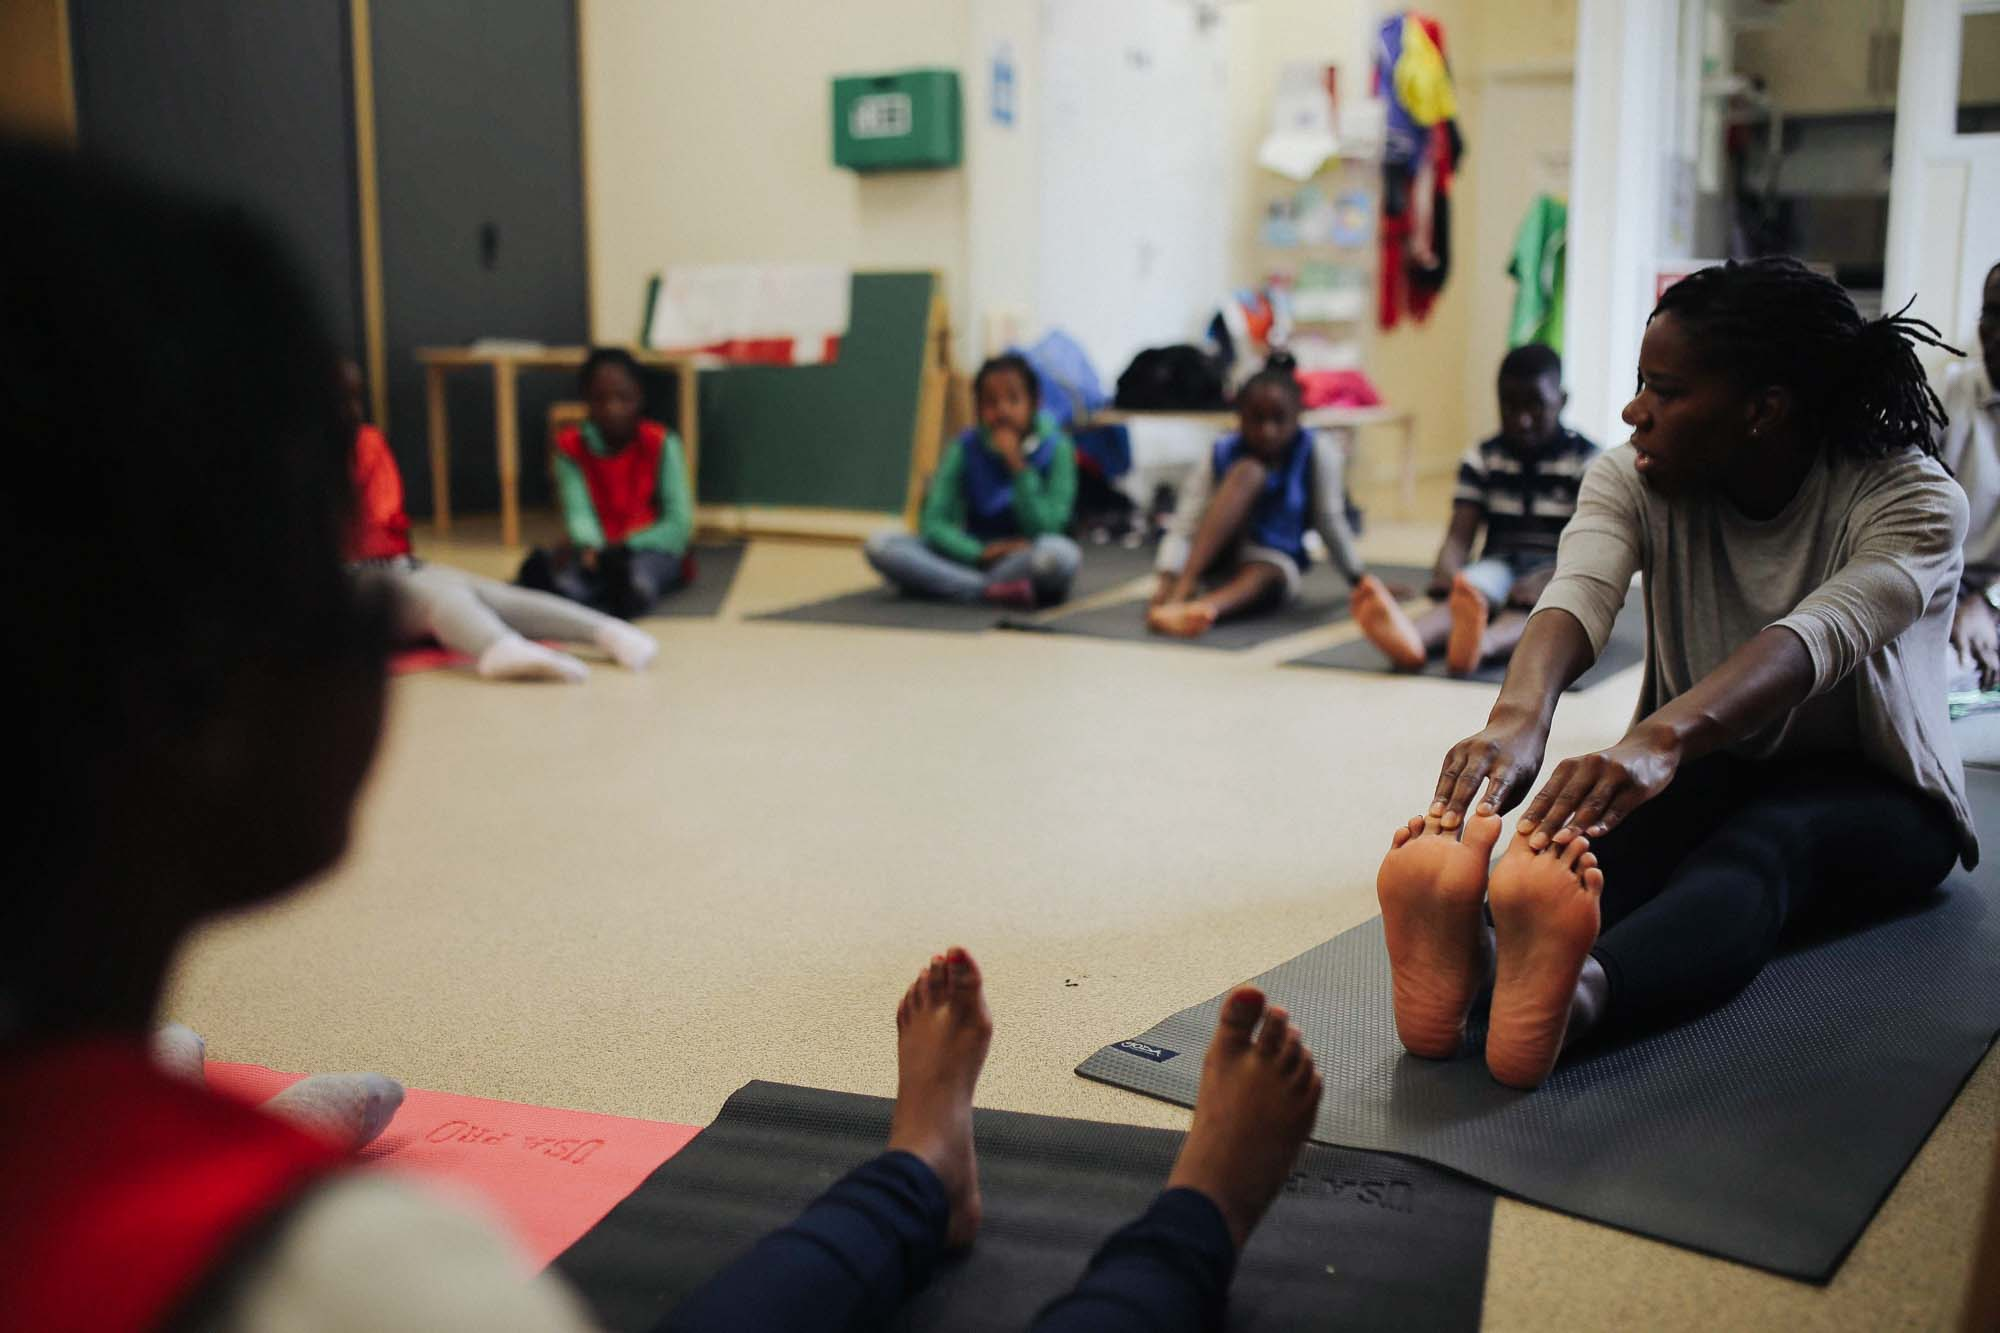 Amani Eke from Project Yogi teaching yoga to school children in a classroom